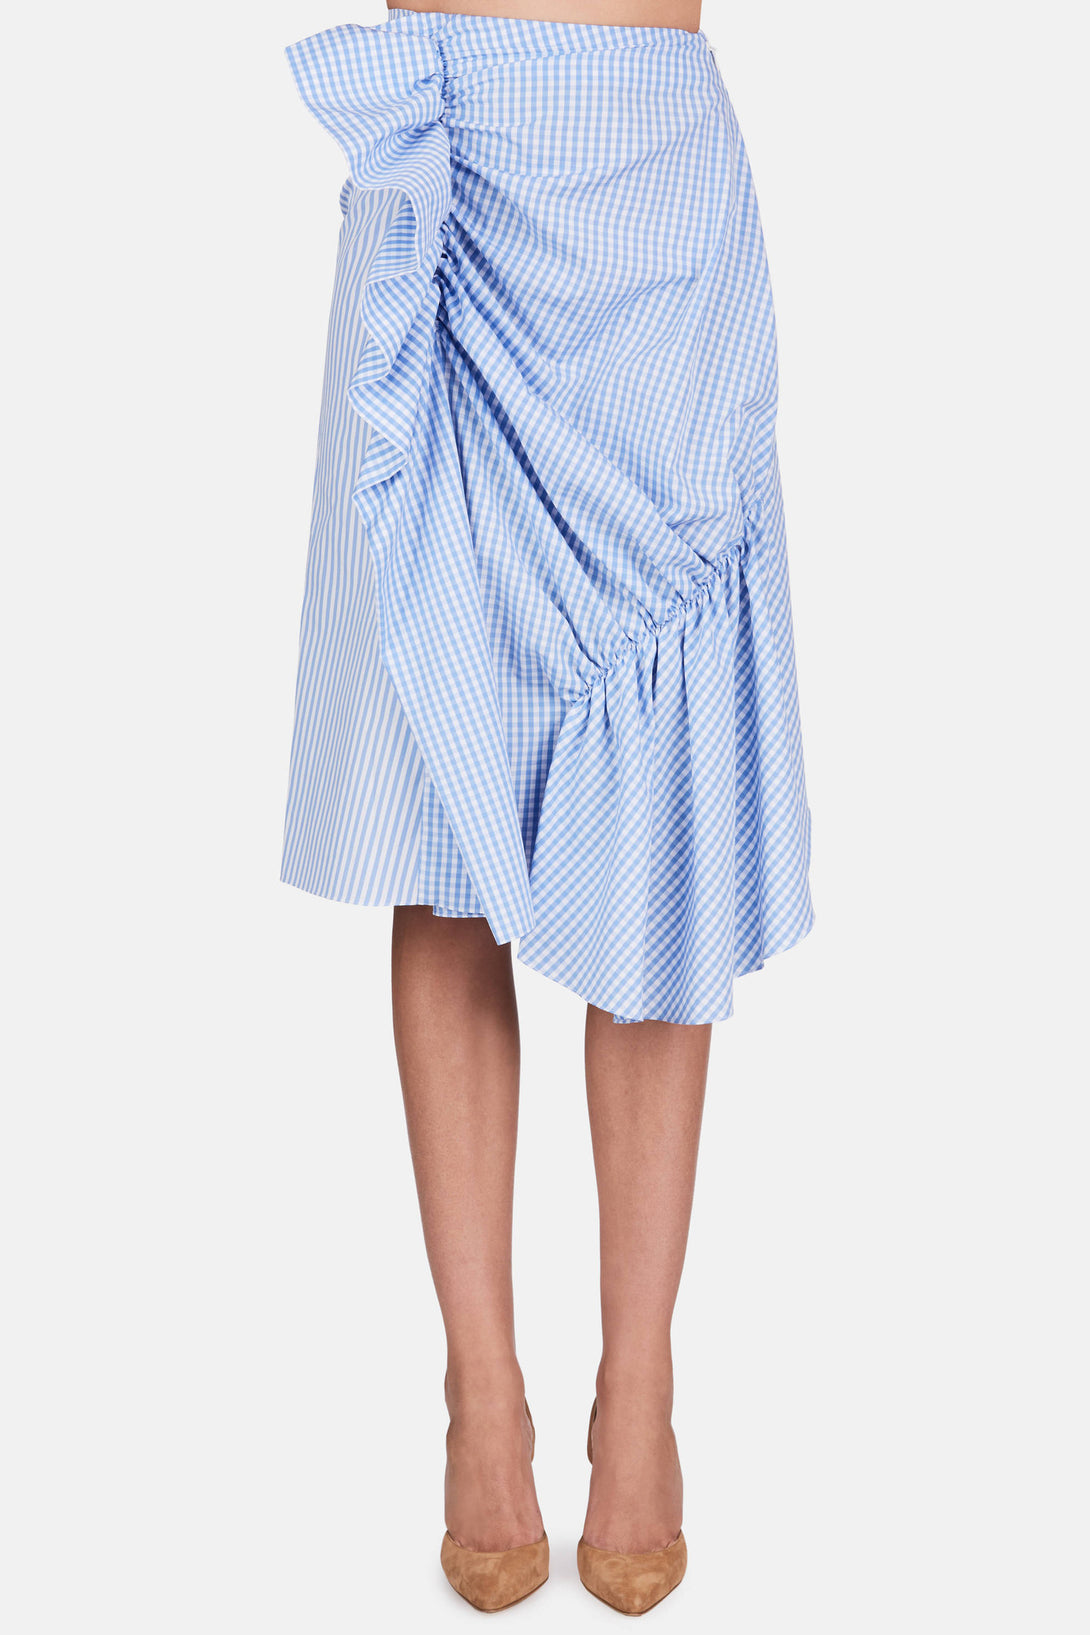 Patchwork Gathered Skirt - Blue/White